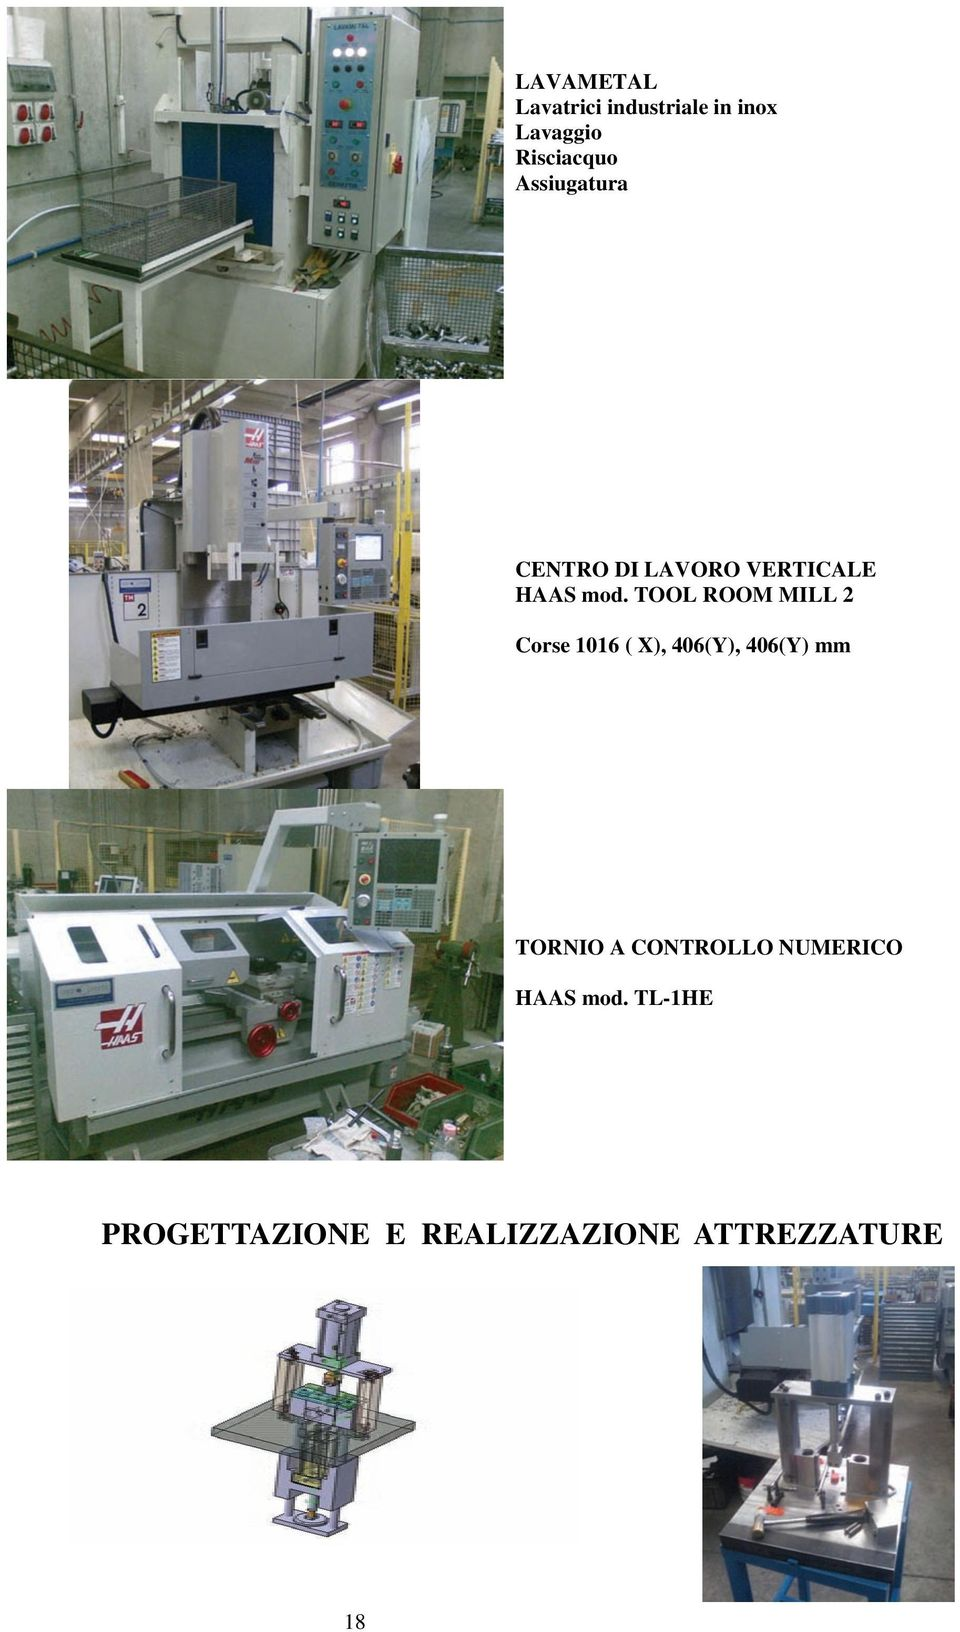 TOOL ROOM MILL 2 Corse 1016 ( X), 406(Y), 406(Y) mm TORNIO A